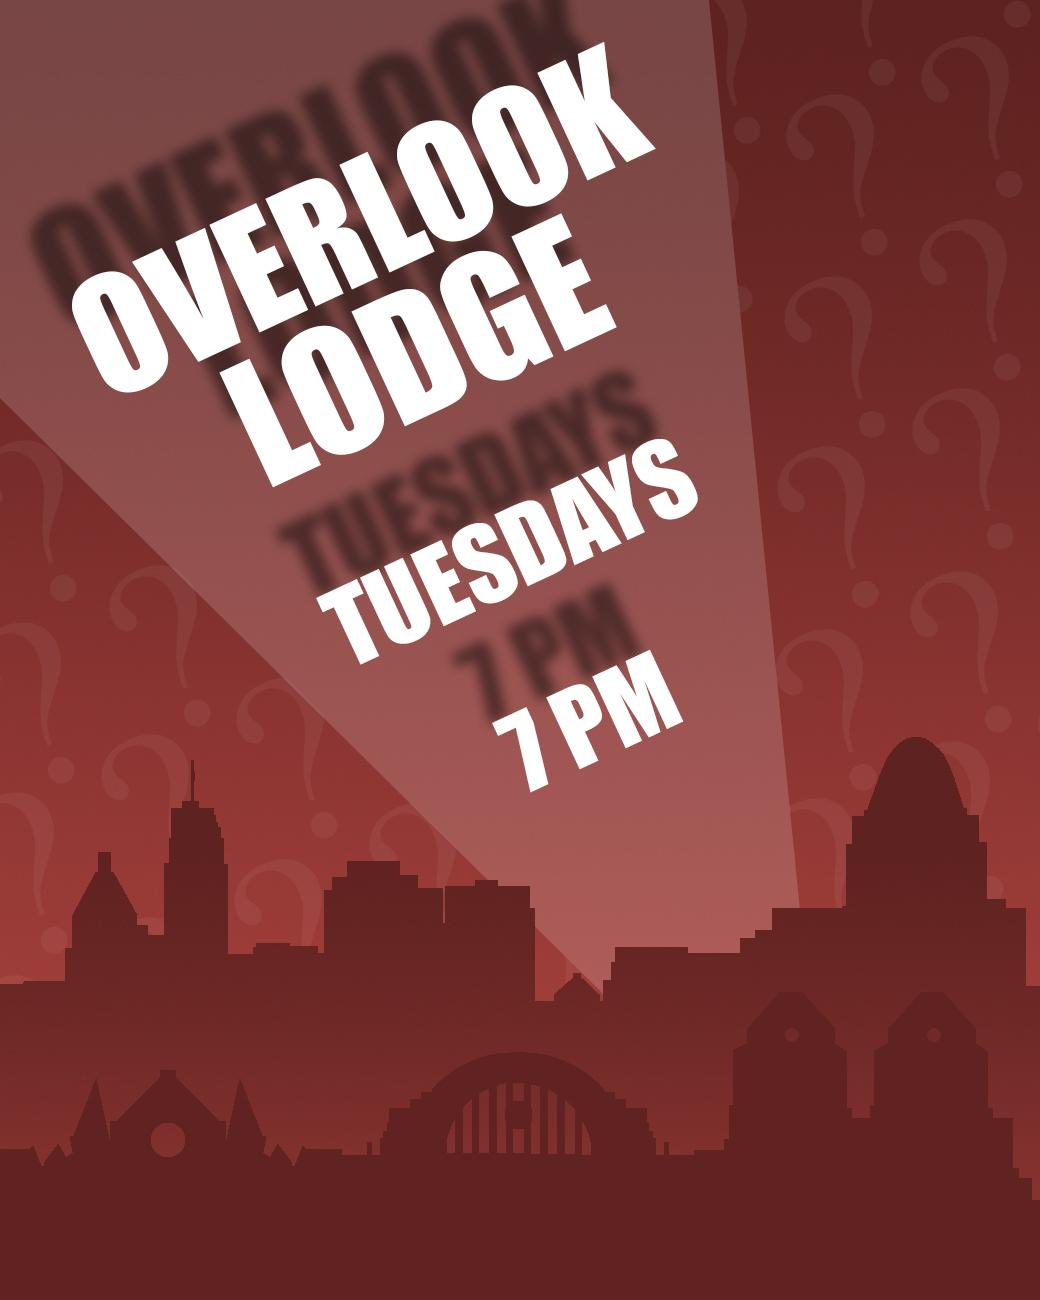 Overlook Lodge has trivia every Tuesday starting at 7 PM. ADDRESS: 6083 Montgomery Rd (45213) / Image: Phil Armstrong, Cincinnati Refined // Published: 8.30.17